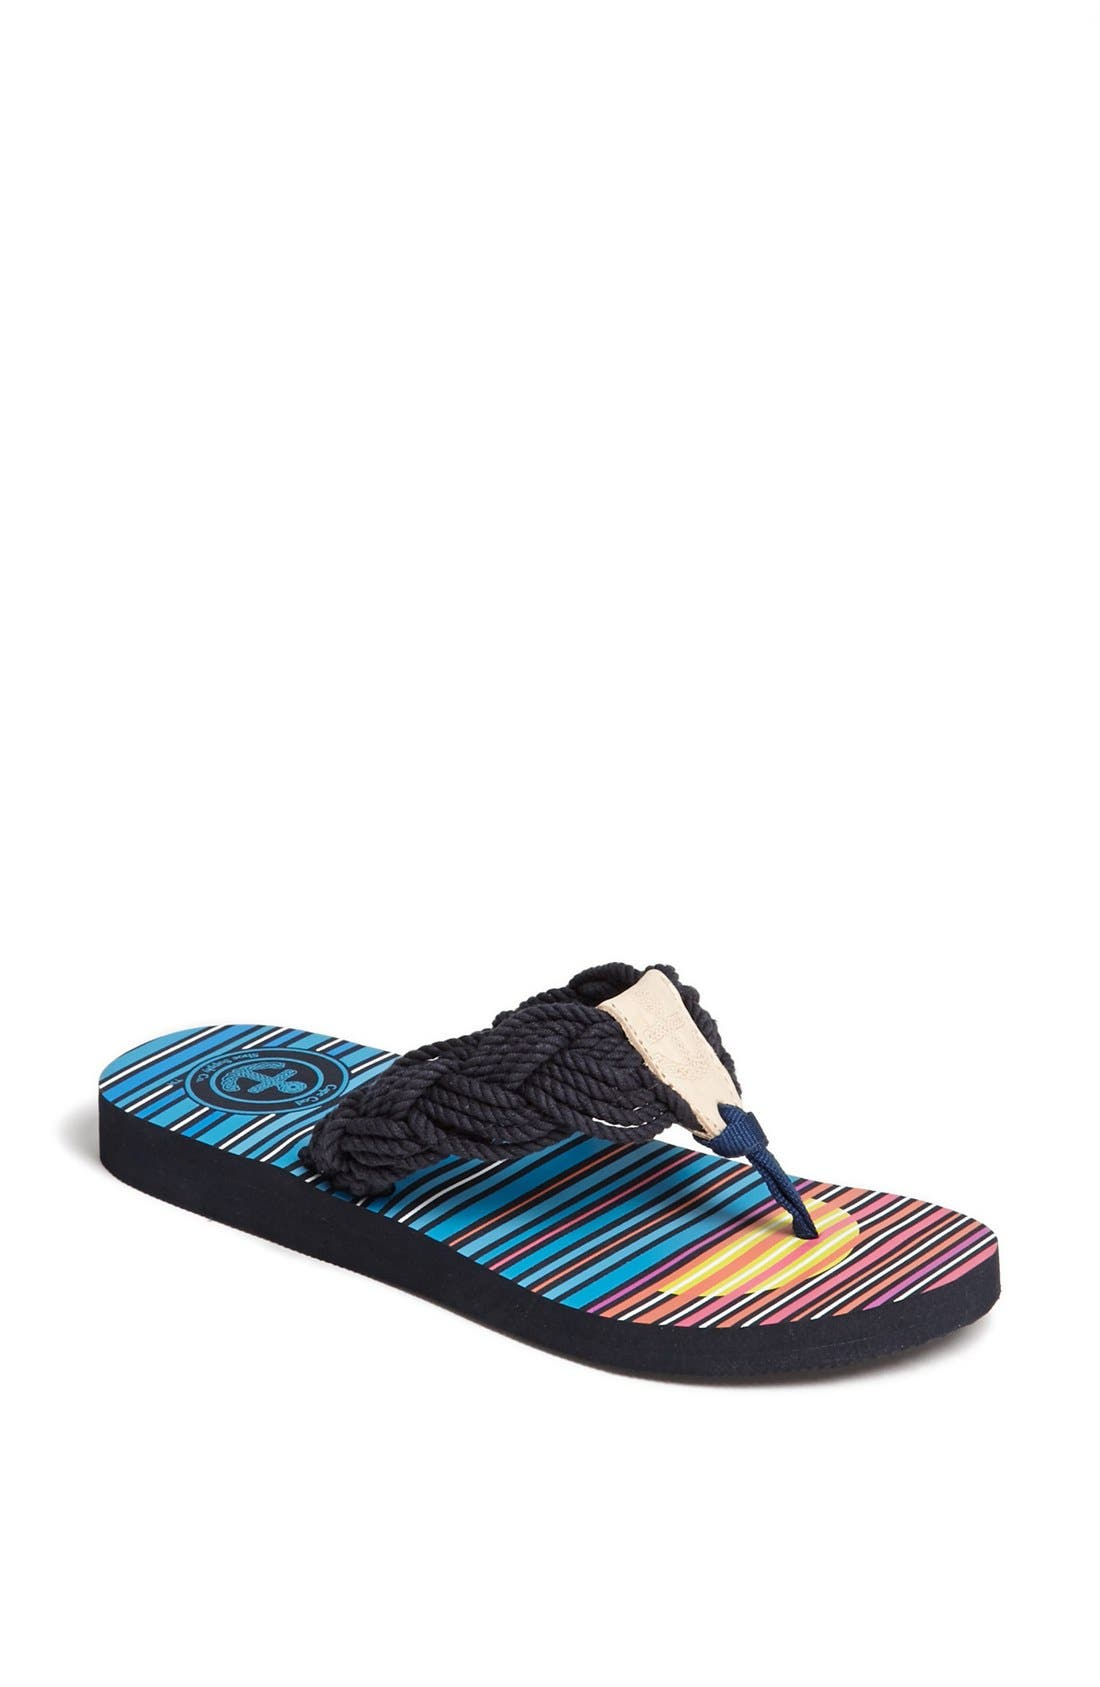 Alternate Image 1 Selected - Cape Cod Shoe Supply Co. 'Mainsail' Flip Flop